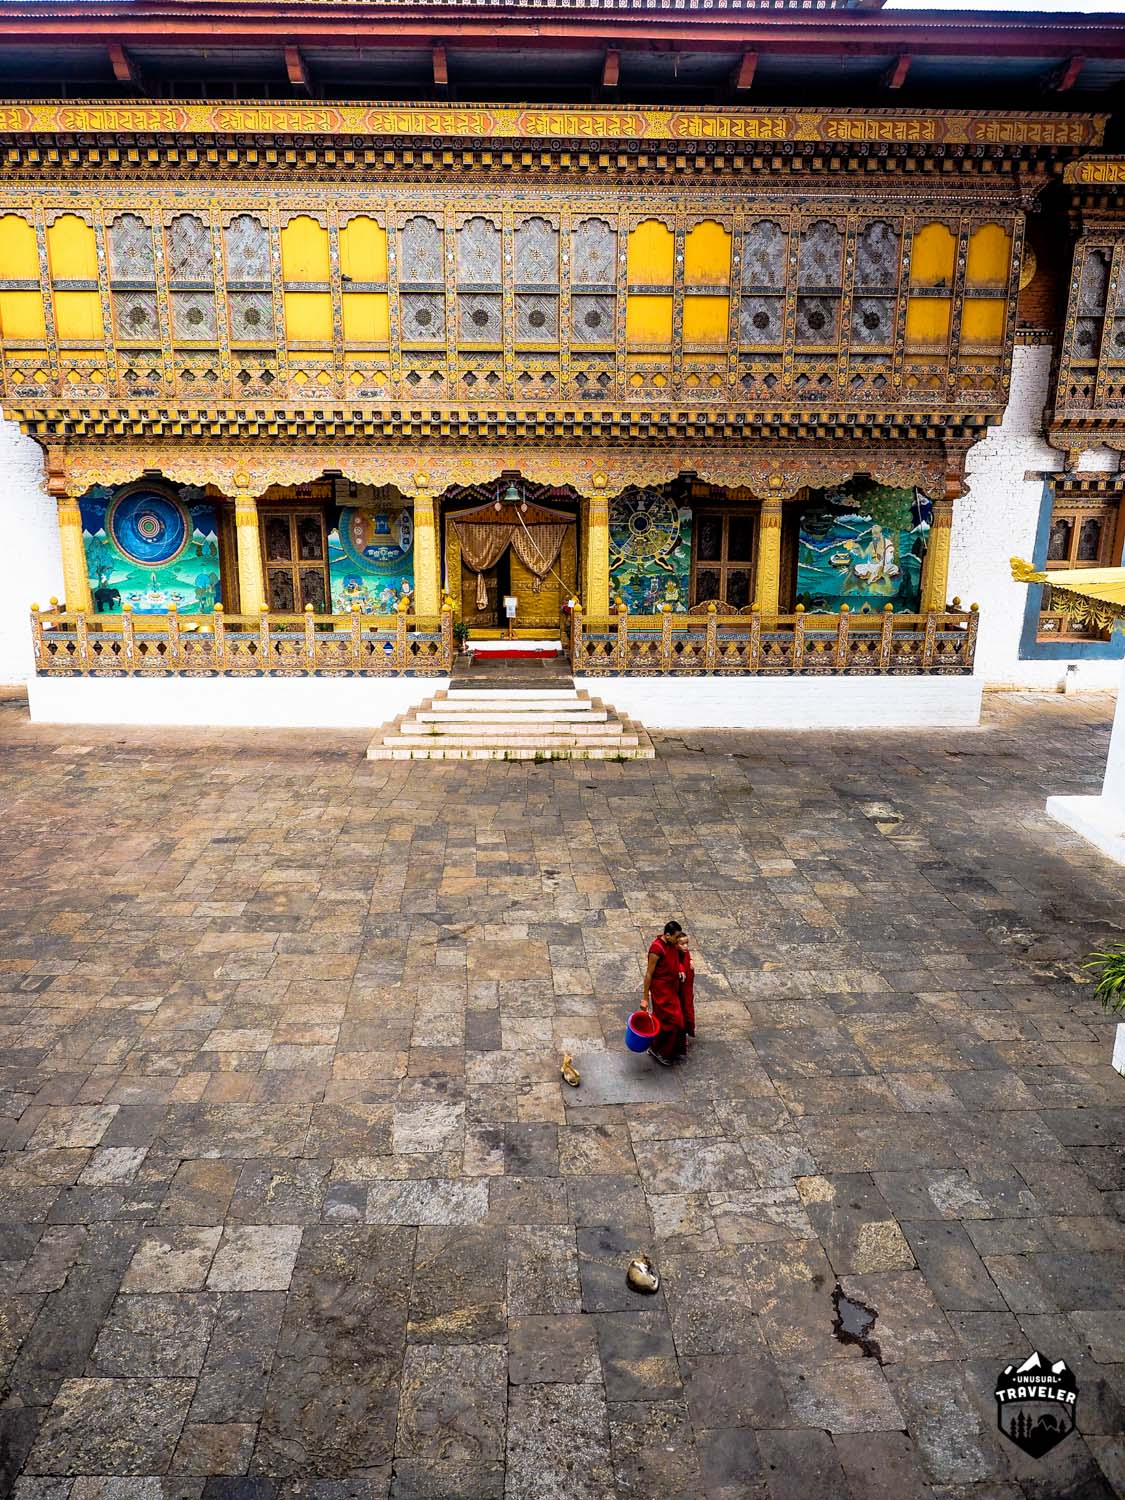 Two monks walking across the main square inside Punakha Dzong